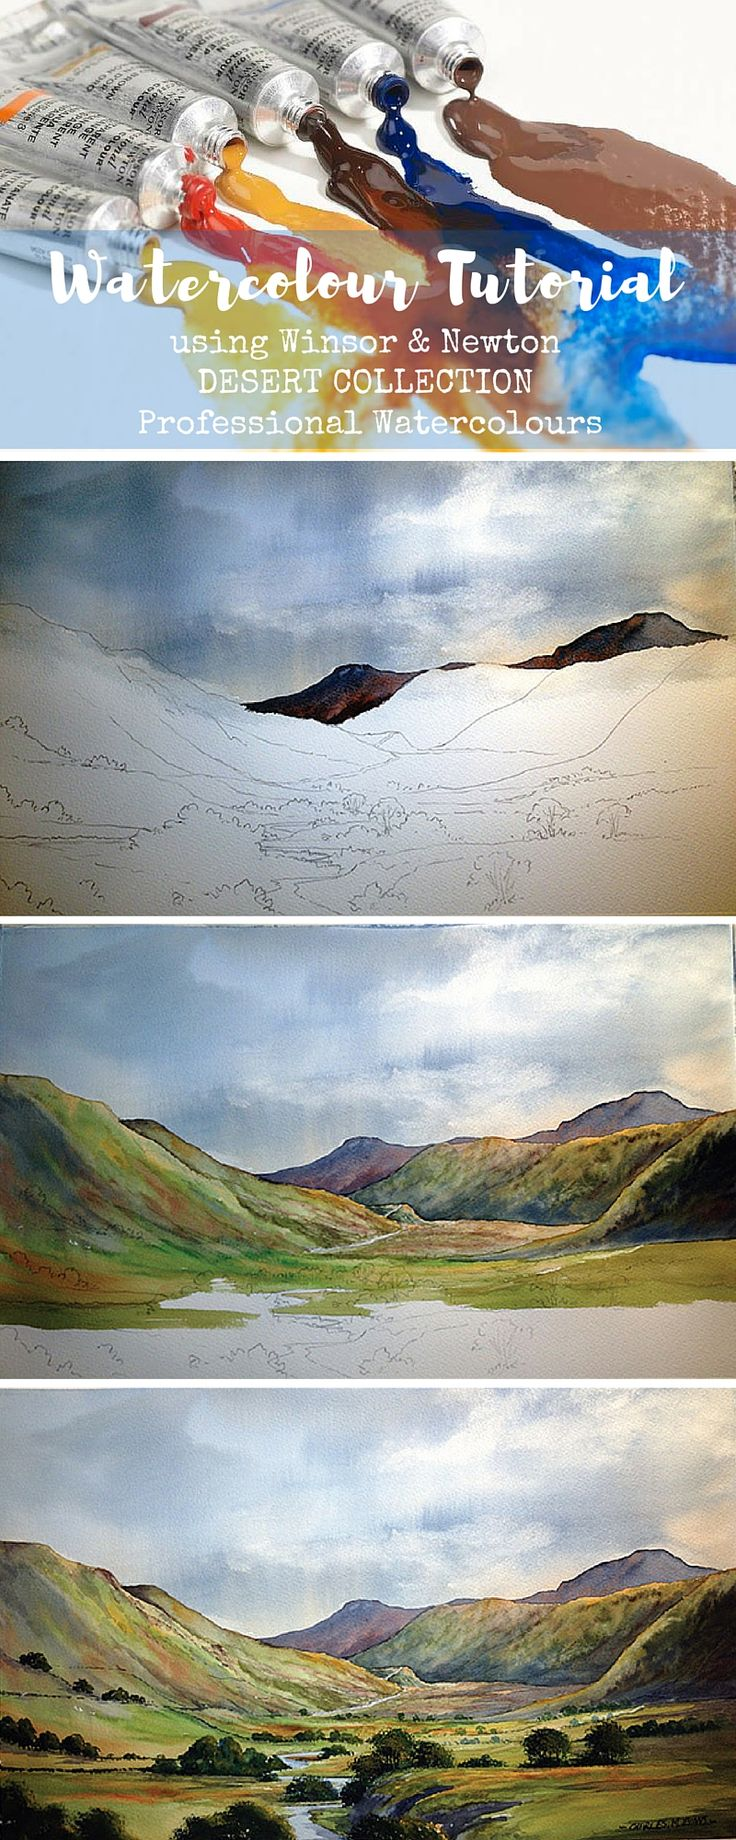 Watercolor artists directory wiki - Tutorial By Artist Charles Evans Using Winsor Newton Professional Watercolour Desert Collection Colours To Paint